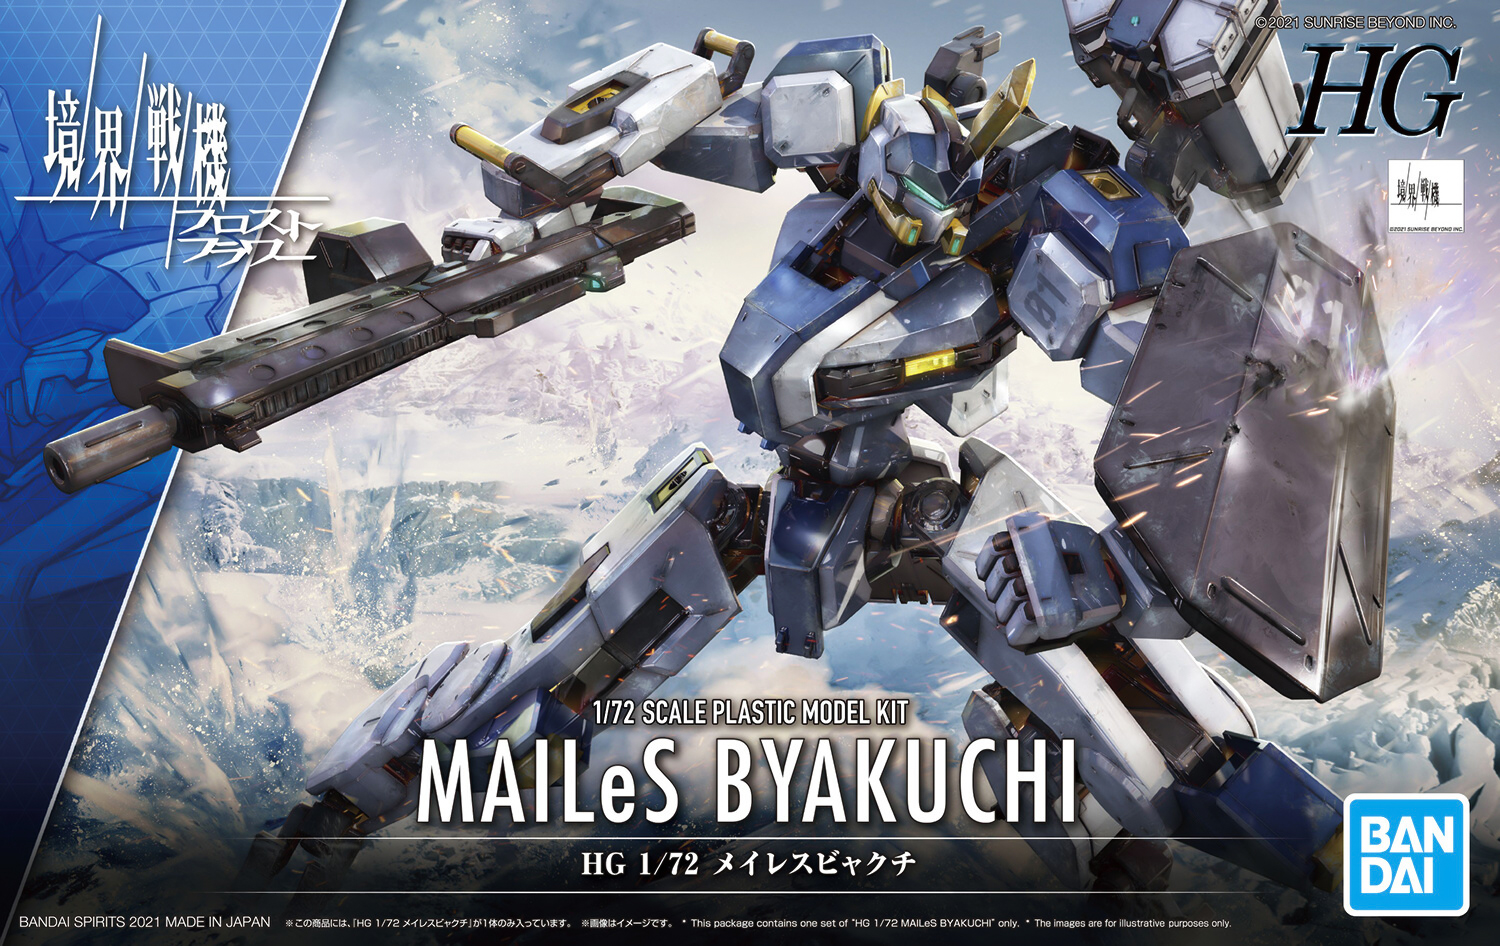 Featured image for Quick Box Art Extravaganza: HG MAILeS Byakuchi